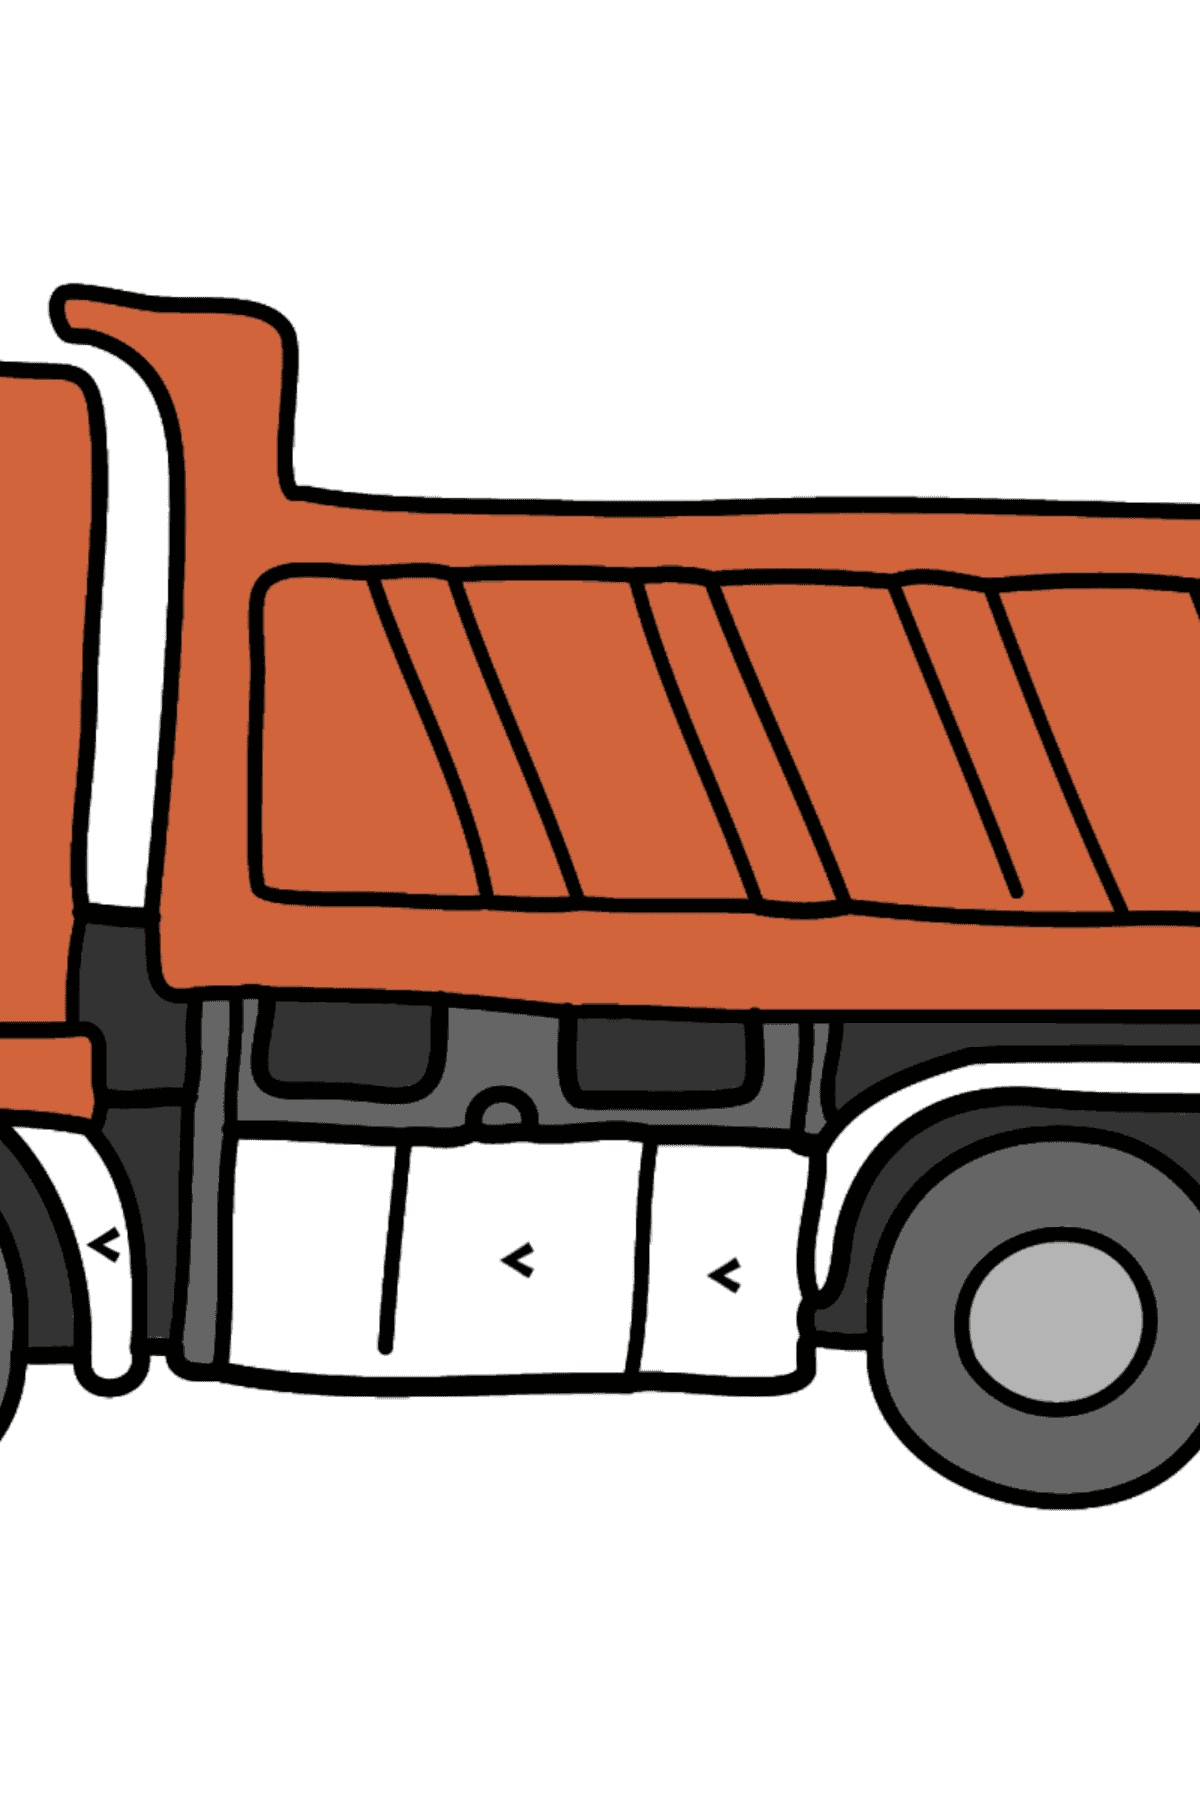 Coloring Page - A Dump Truck - Coloring by Symbols and Geometric Shapes for Kids